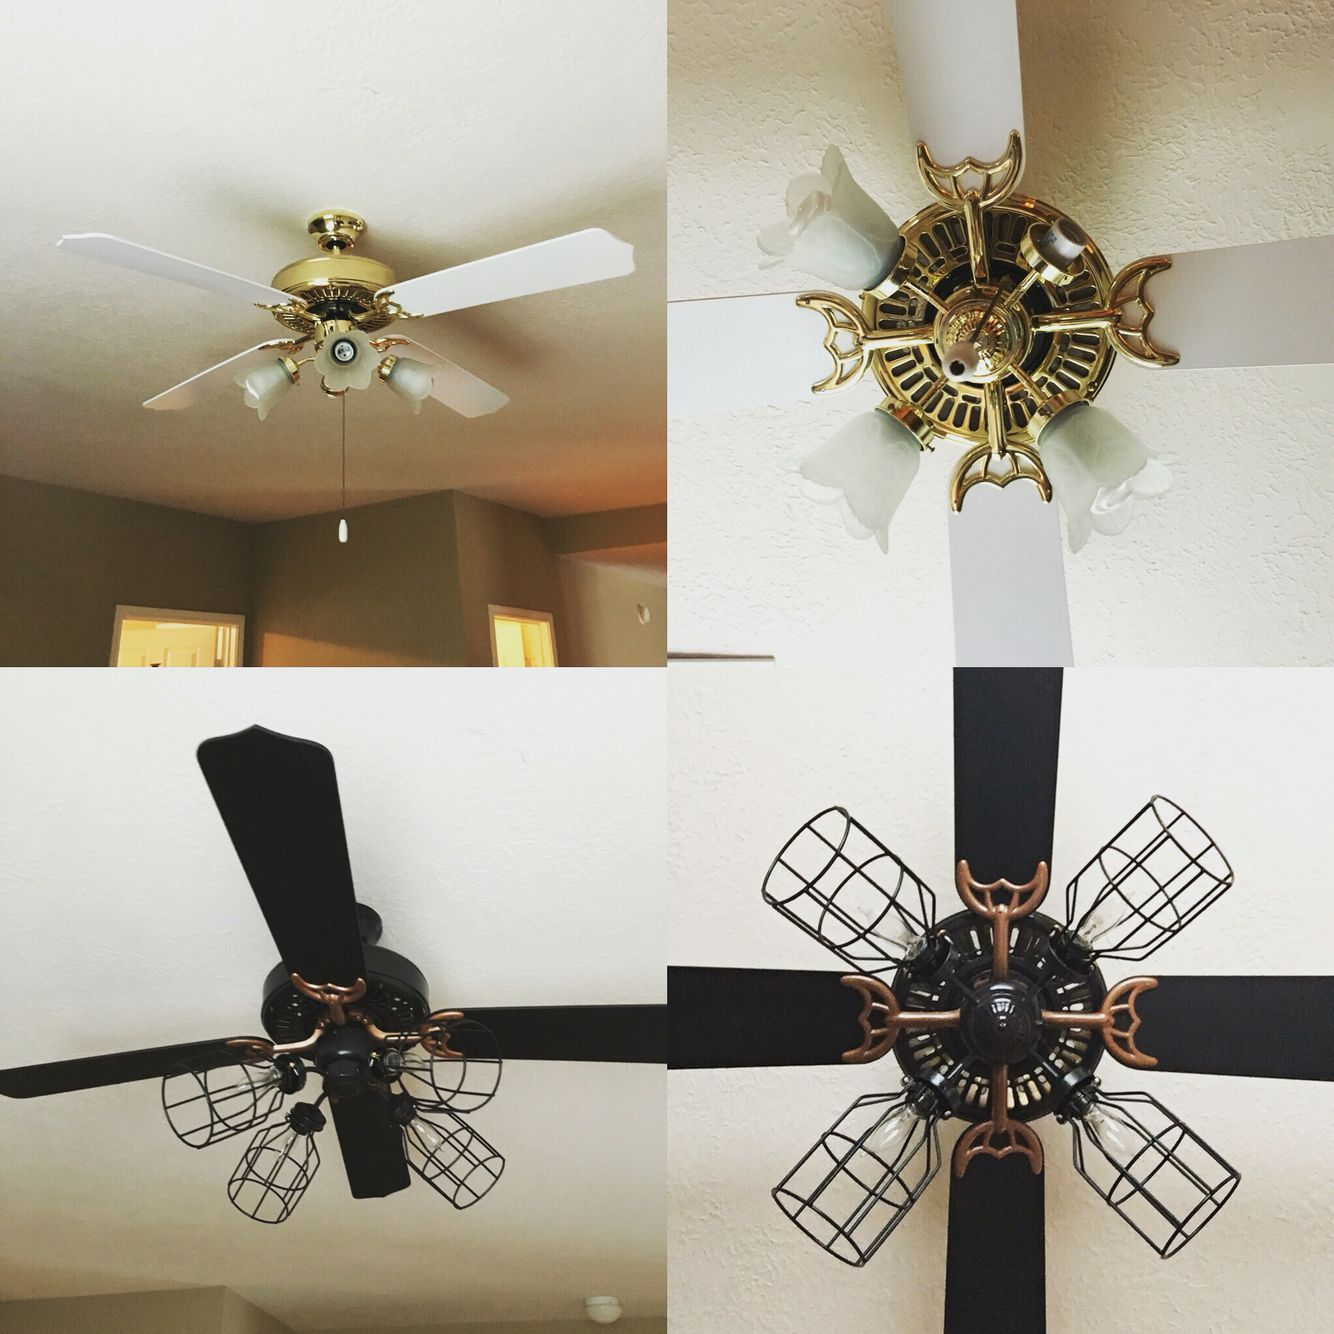 The Top Photos Are Of The Awful Dated Ceiling Fan In My Game Room